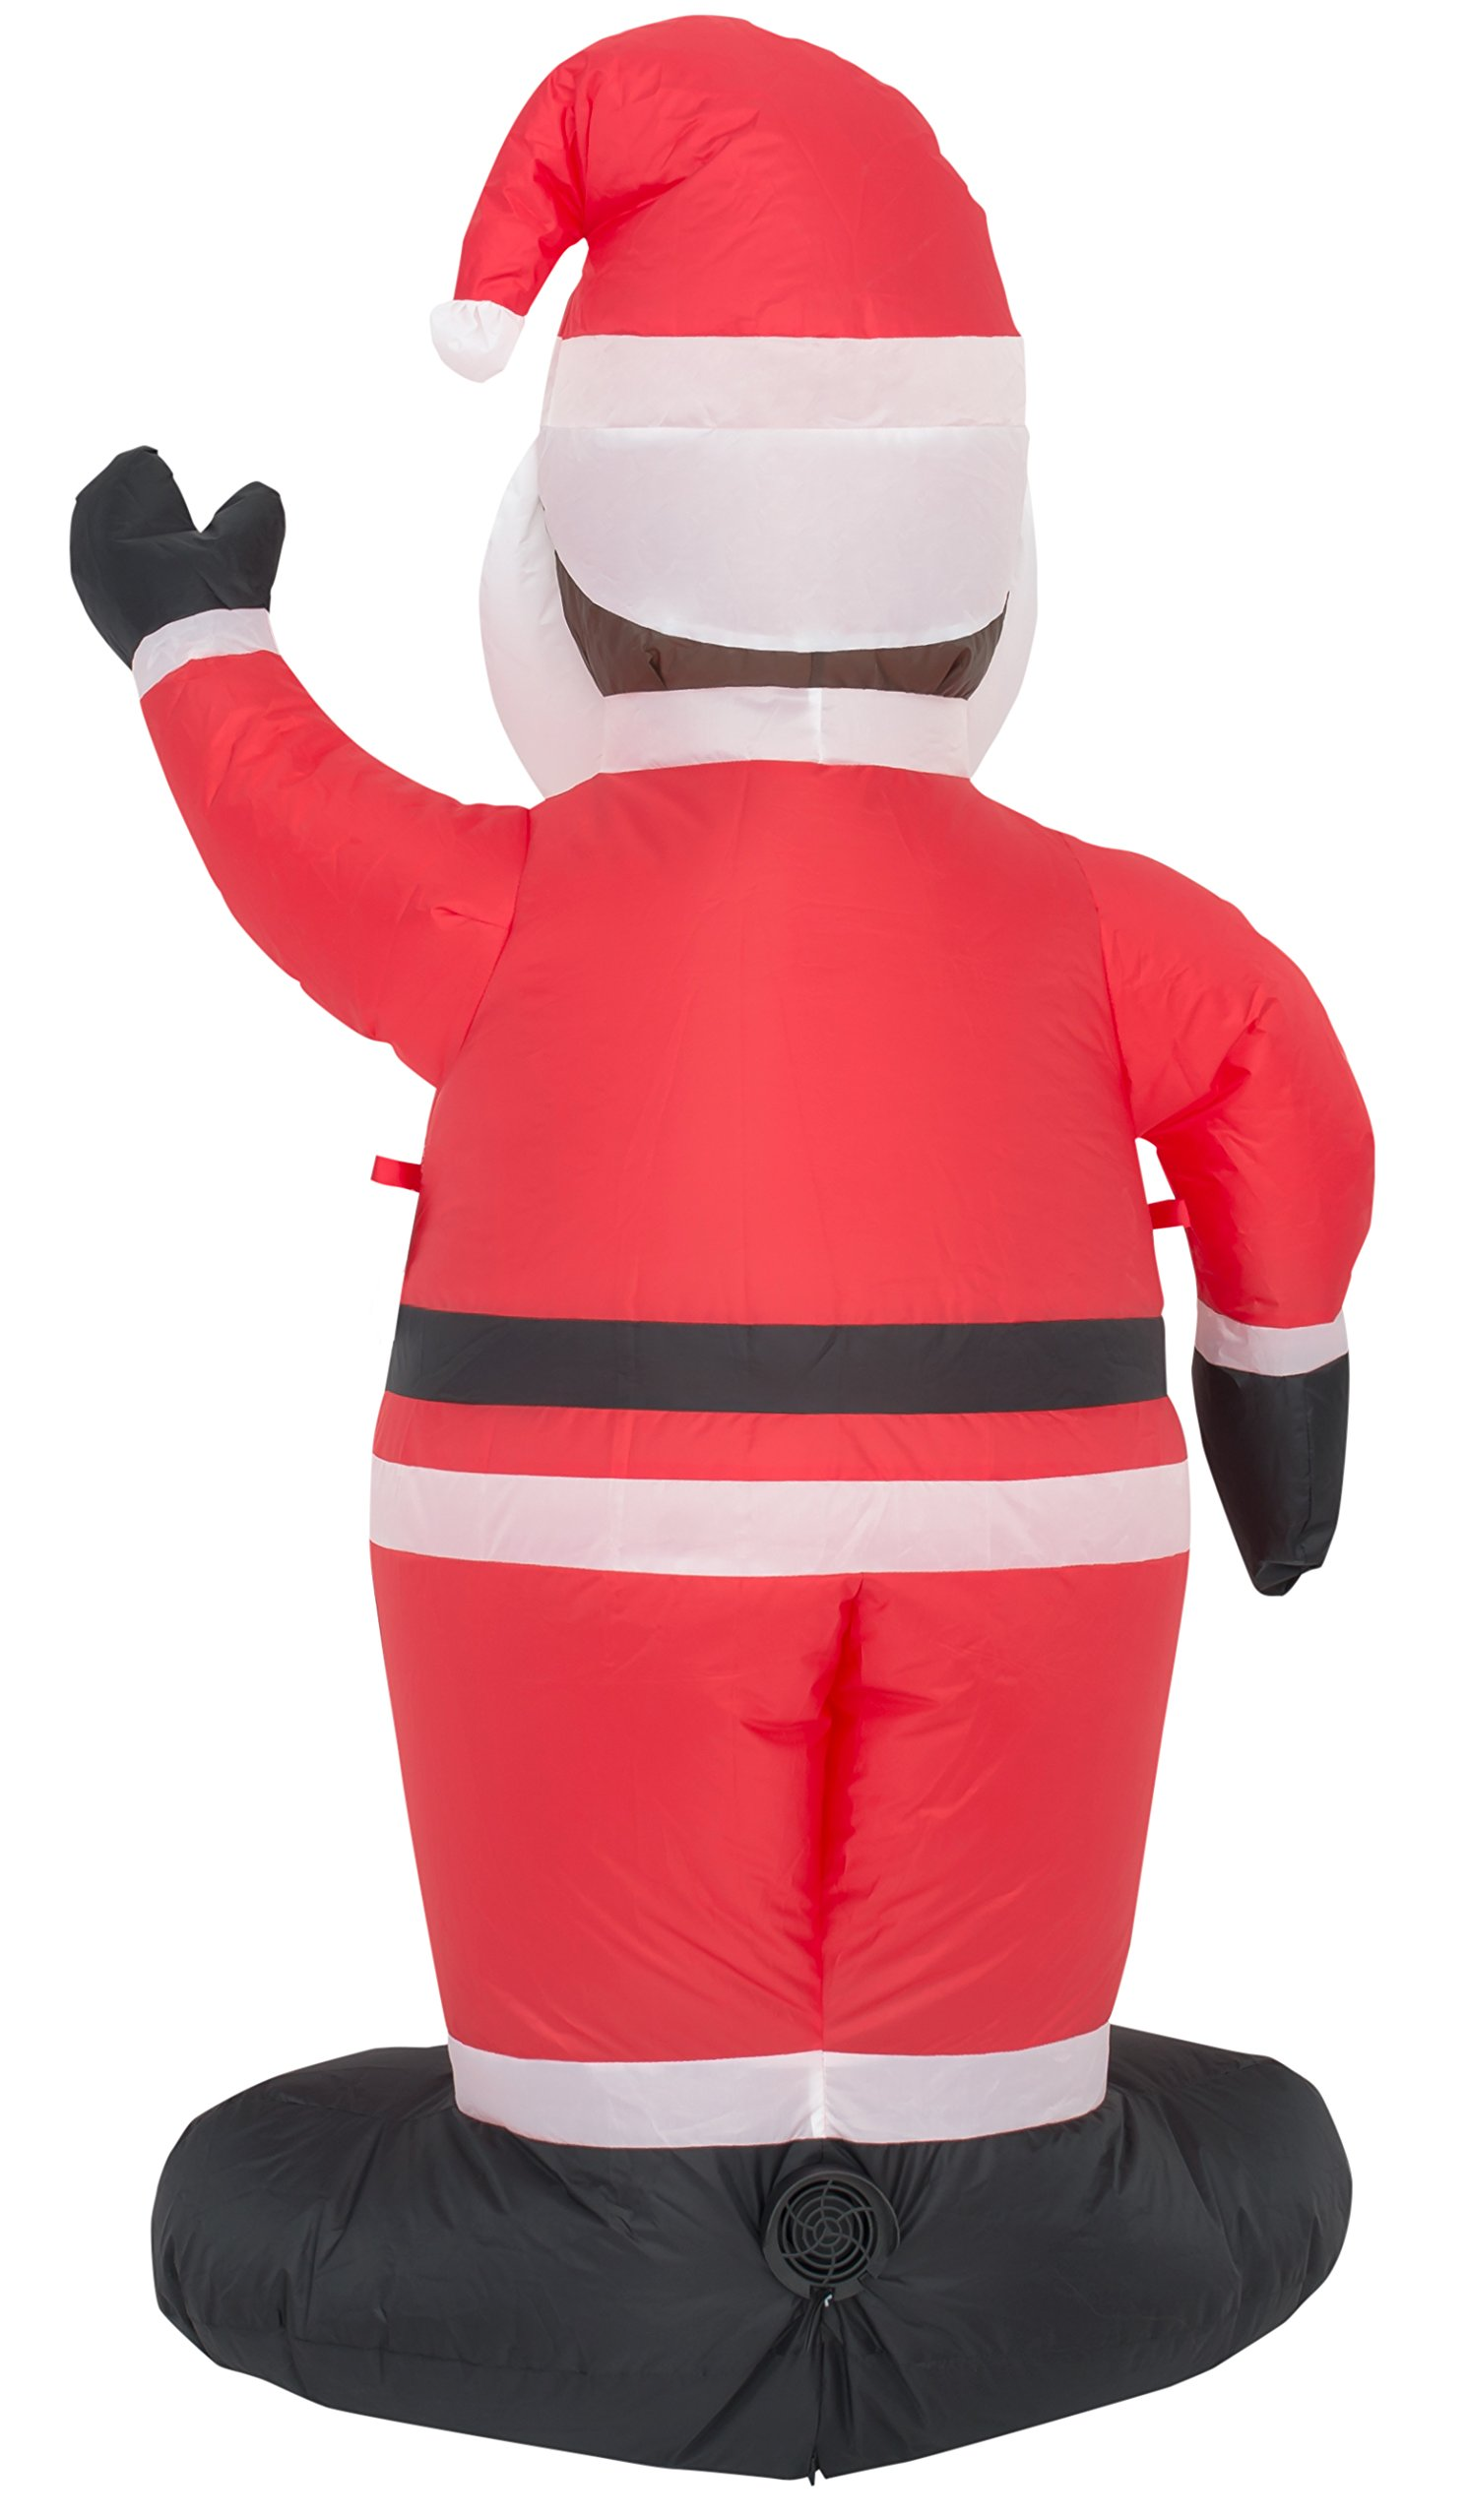 Costume Agent Inflatable Airblown Indoor and Outdoor Christmas Decoration (4 feet, Black Santa) by Costume Agent (Image #3)